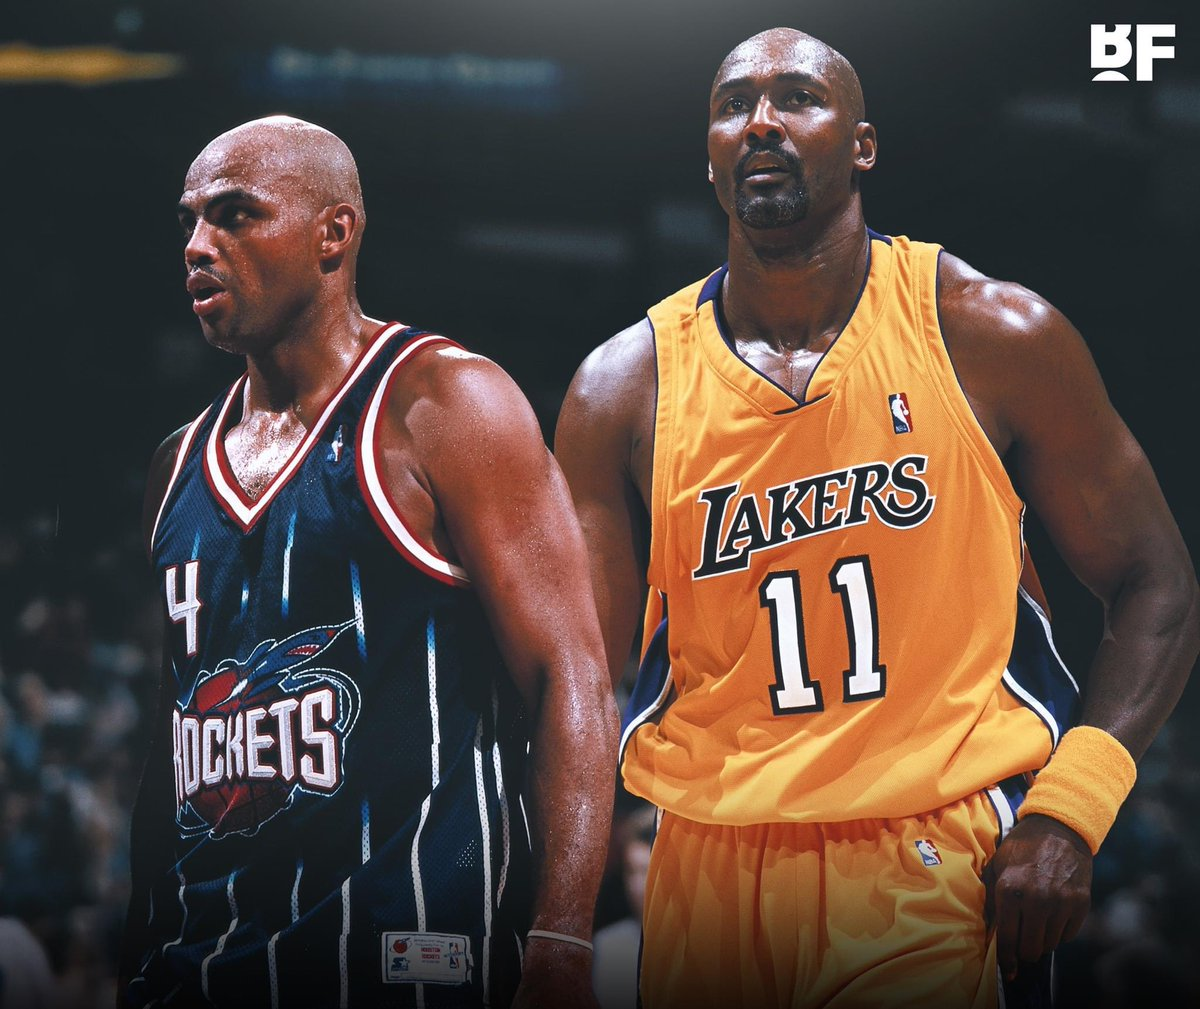 """I wouldn't even have counted (winning a ring with the Rockets) as a championship. I'm not gonna lie. Me and Karl Malone. If he had won a championship with the Lakers, that doesn't count.""  - Charles Barkley https://t.co/mjXYuNcrtG"